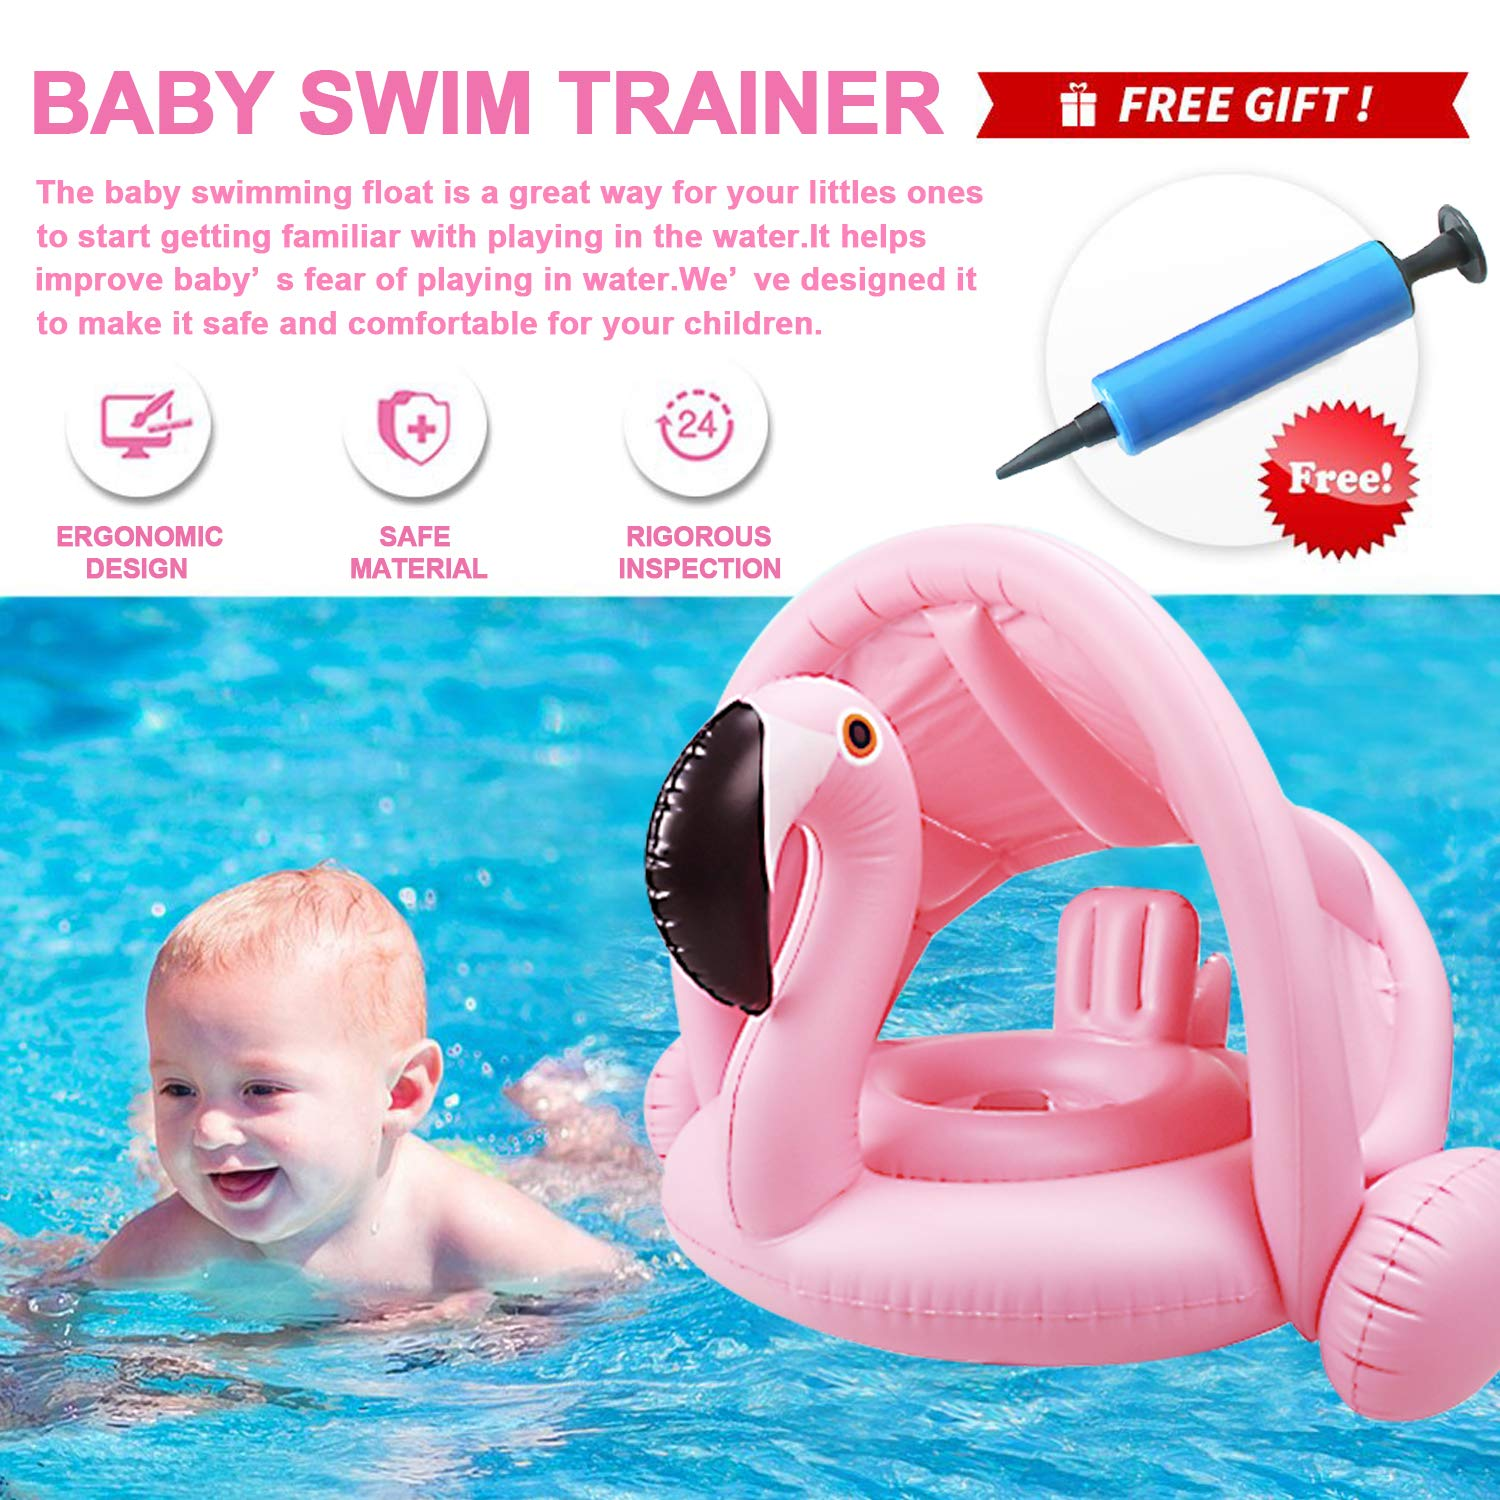 Joyork Baby Pool Float with Canopy Infant Swimming Ring Flamingo Pool Float with Shade Safety Seat Boat Swimming Training Float for Boys Girls of 3-36 Months Outdoor Summer Beach Swim Pool